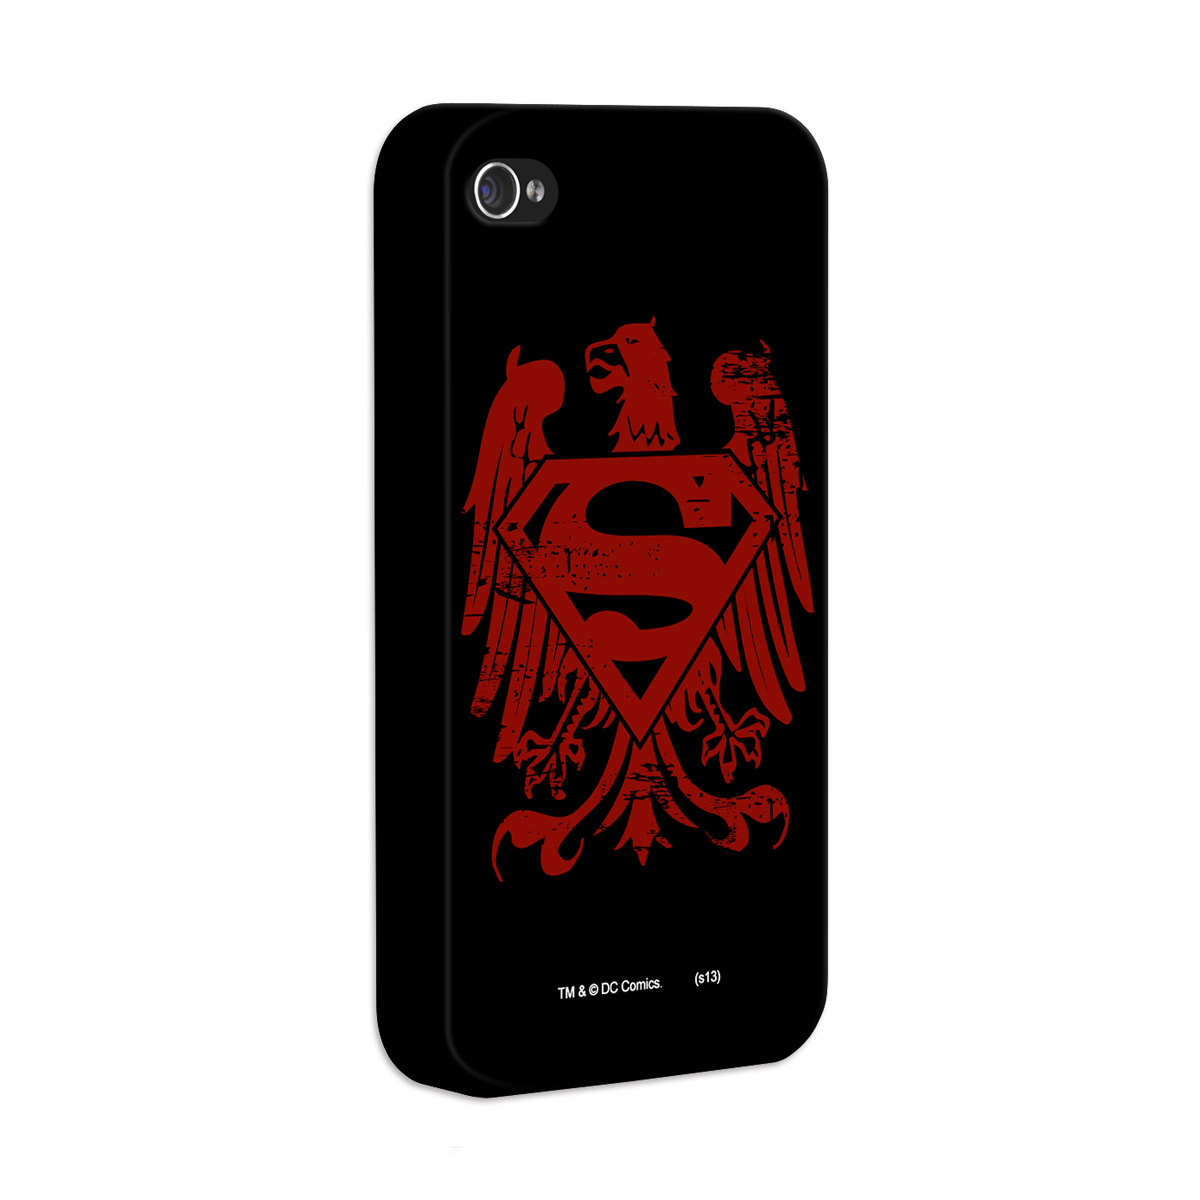 Capa de iPhone 4/4S Superman - Classica Aguia Americana